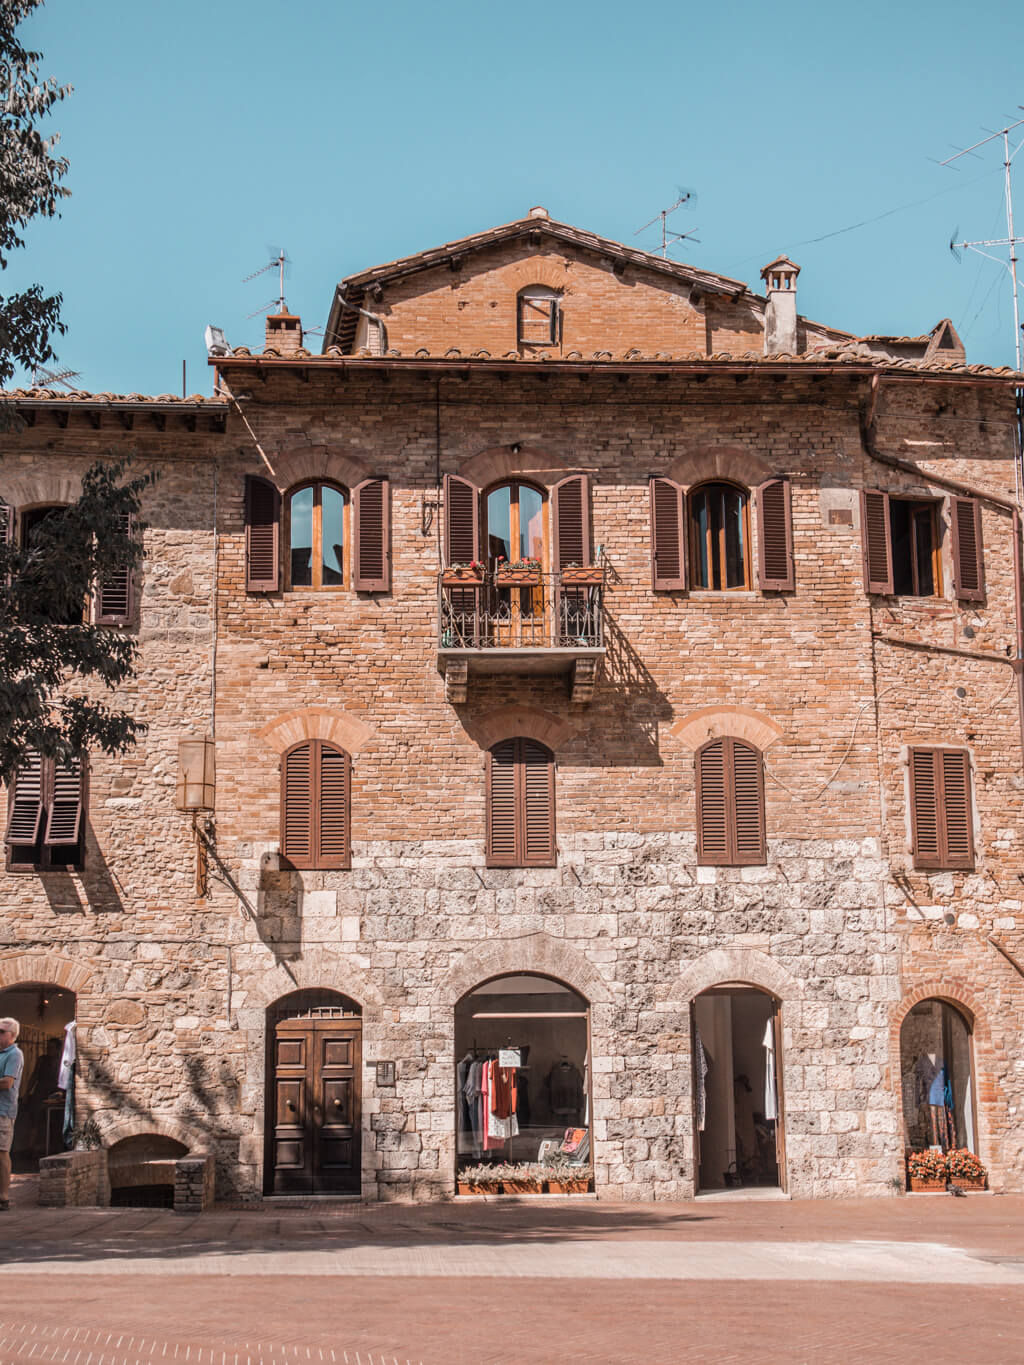 San Gimignano    A Guide For Planning A Trip To Tuscany, Italy - Things to do, including food & restaurants tips, wineries, and road trip tips